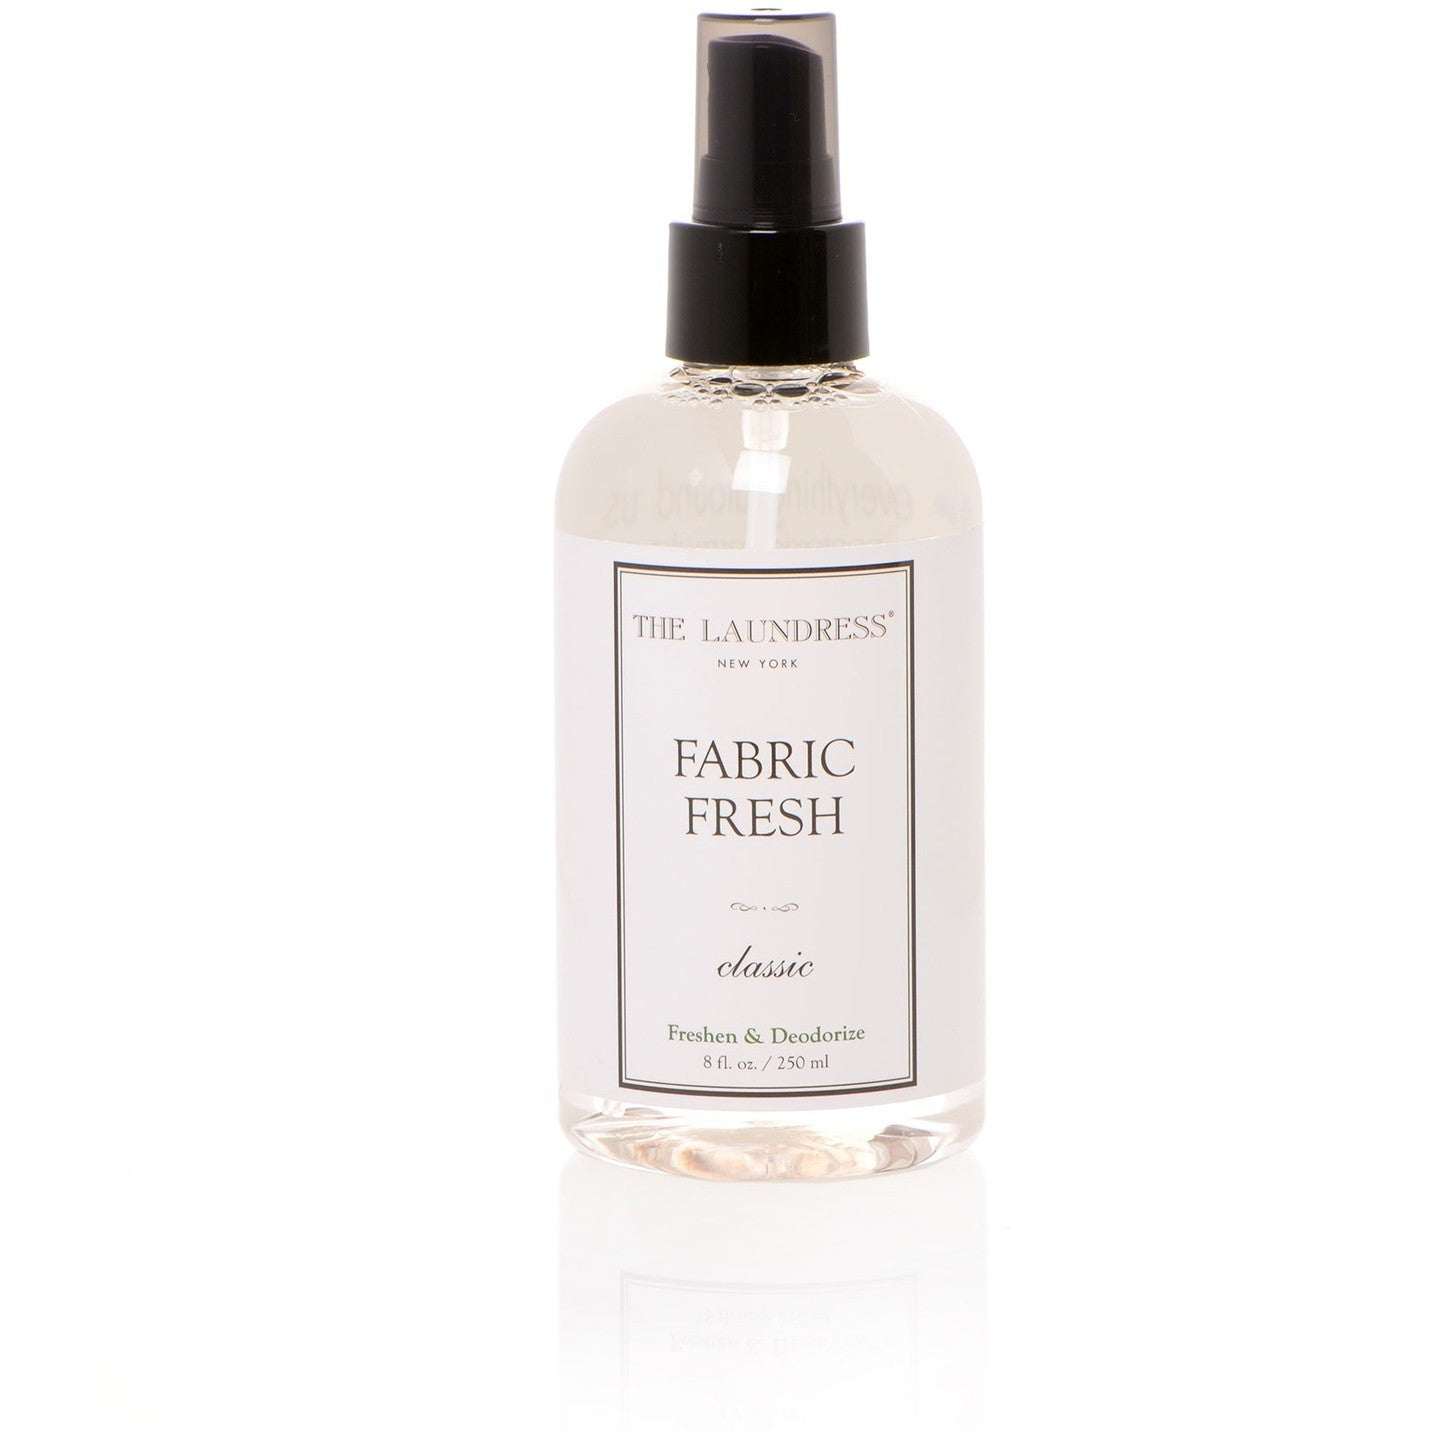 the laundress - fabric fresh, classic spray[product_type ]the laundress - Kiss and Makeup